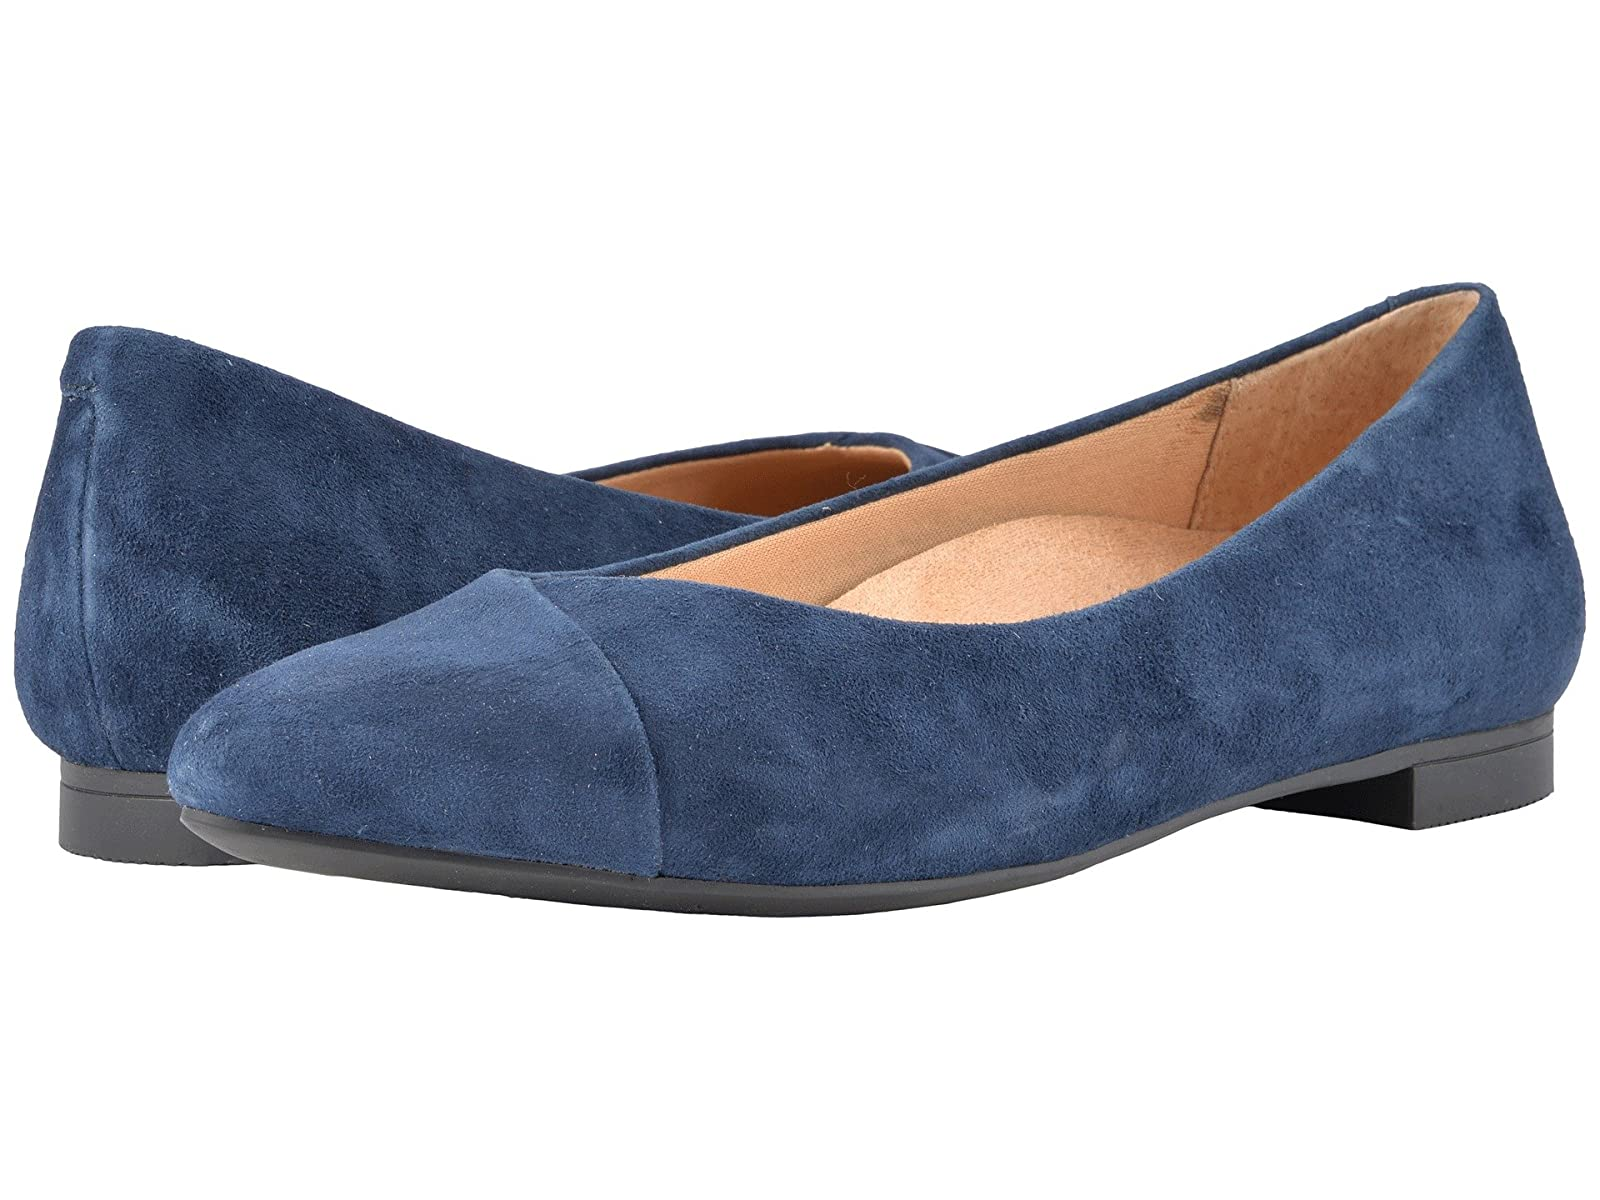 VIONIC CaballoCheap and distinctive eye-catching shoes